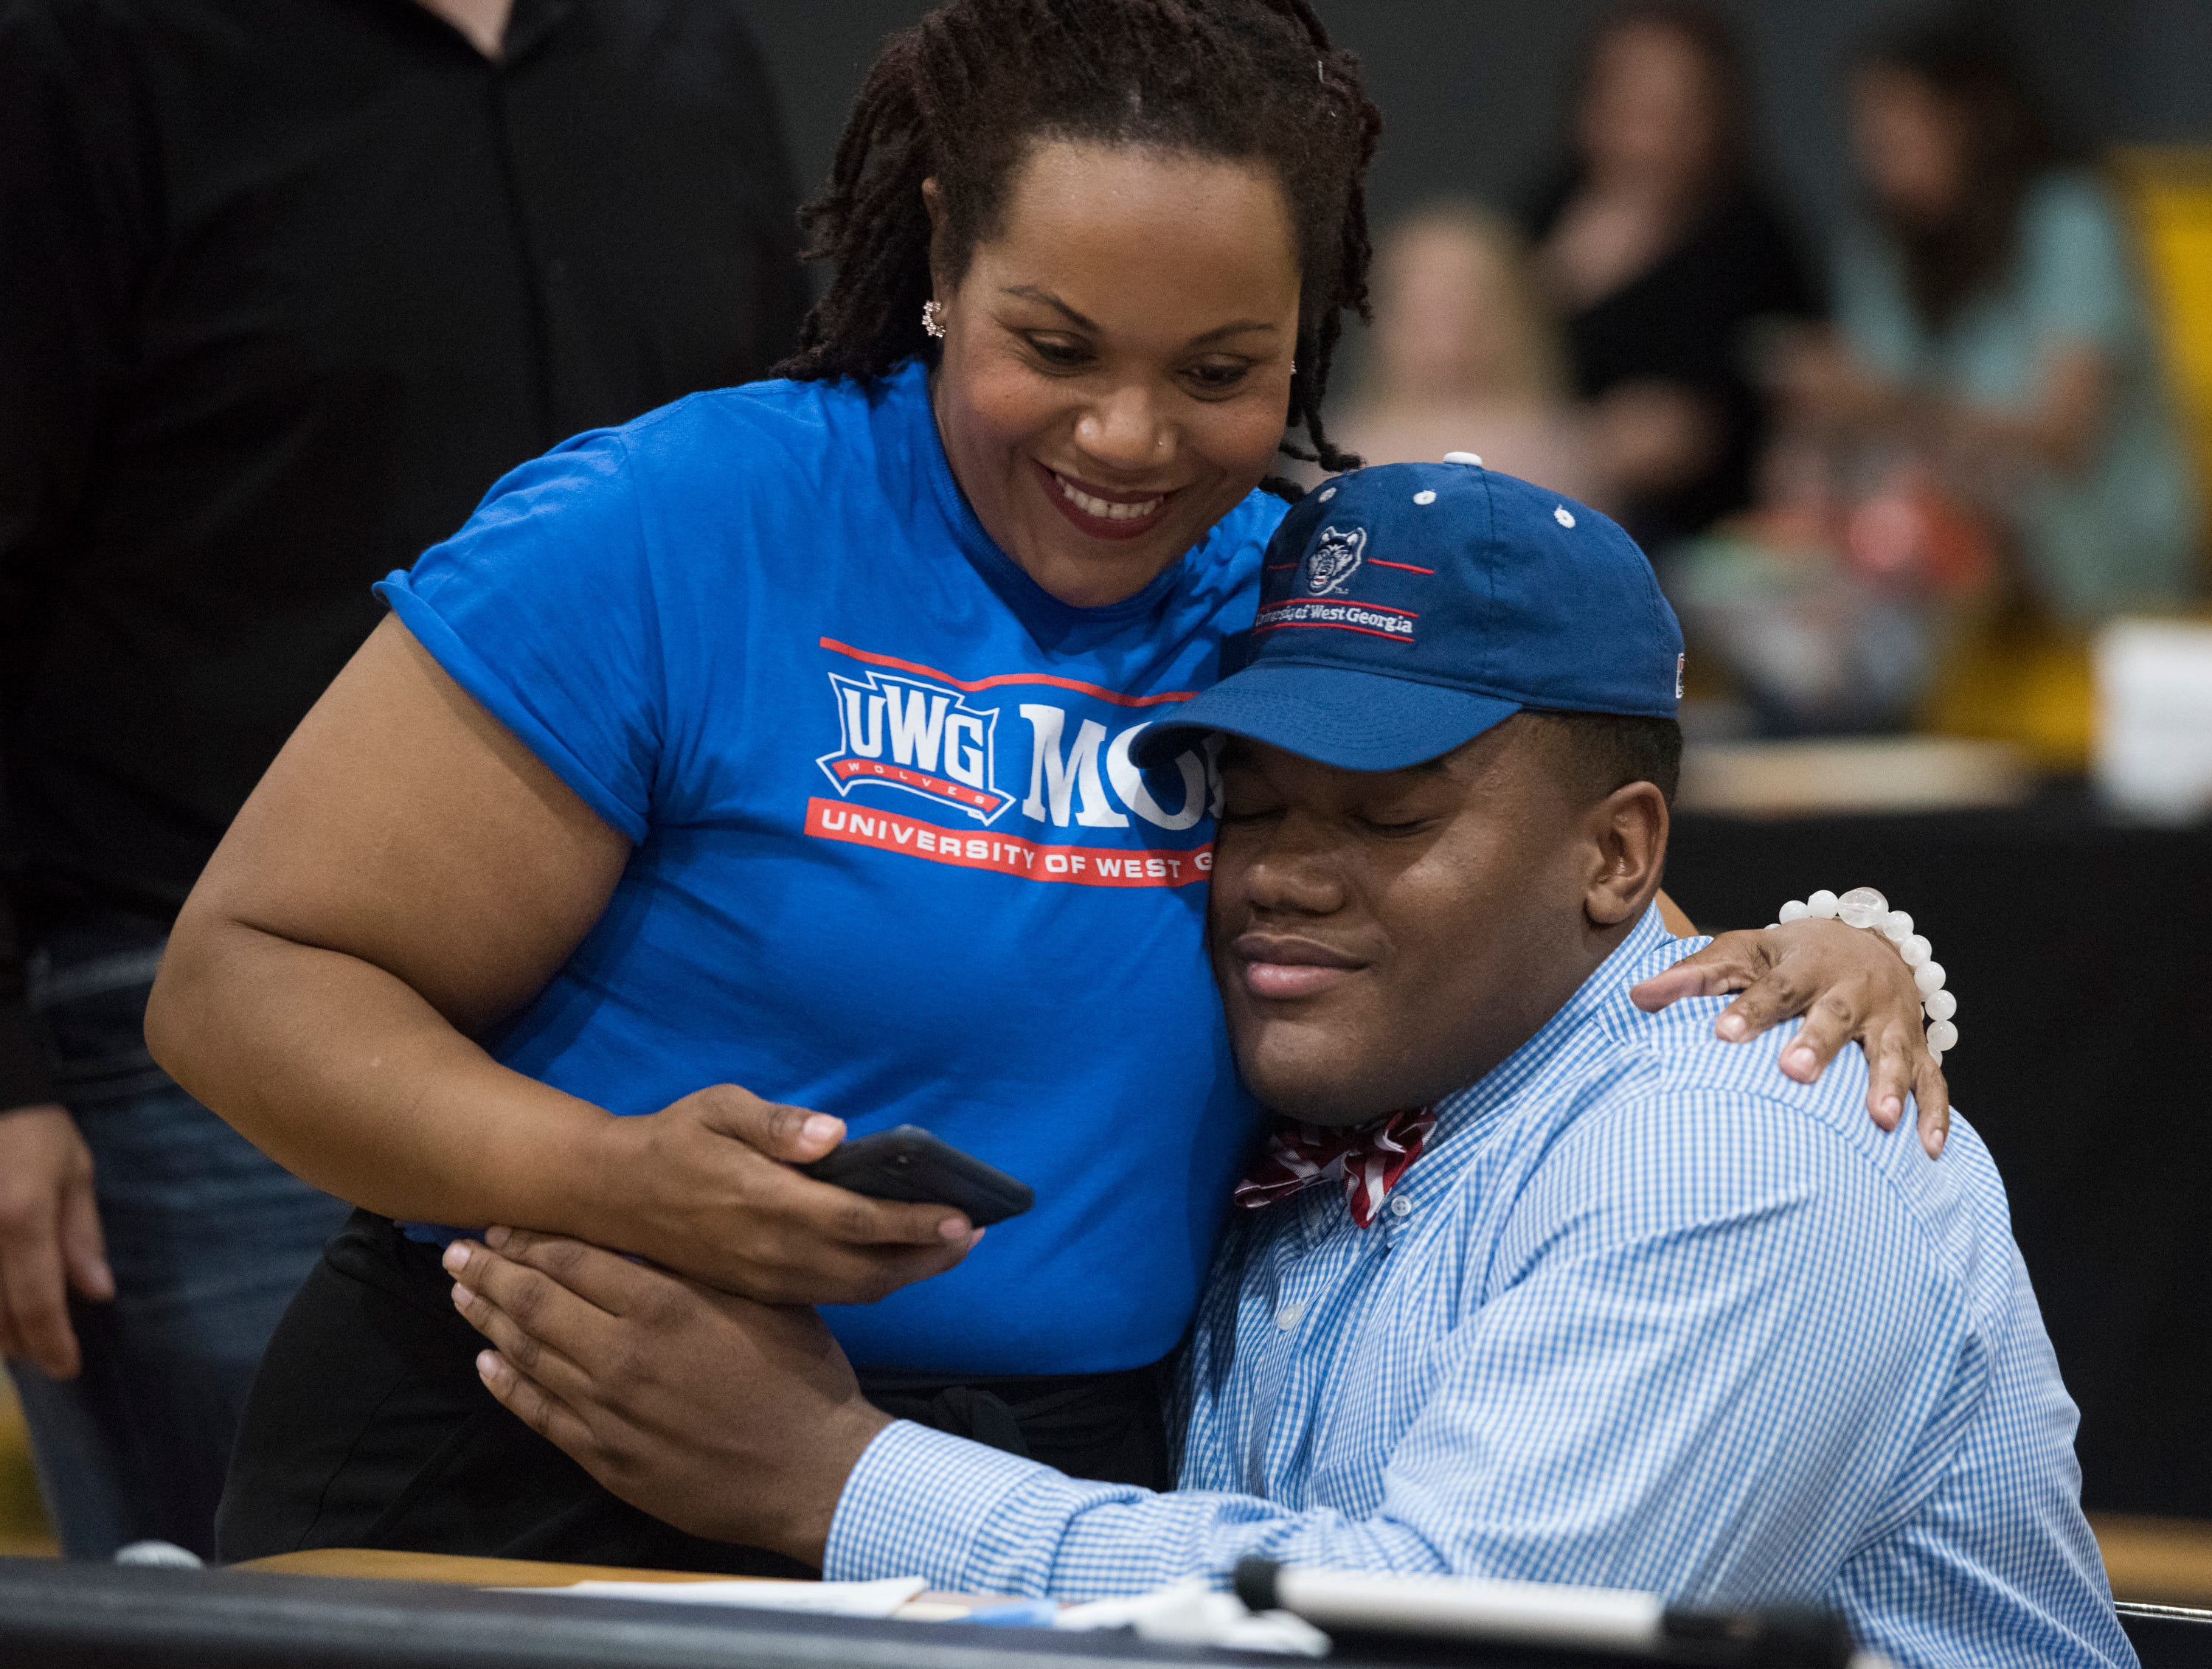 Elijah Elmore hugs his mom after announcing his signing with West Georgia during signing day at Autauga Academy Prattville, Ala., on Wednesday, Feb. 6, 2019.